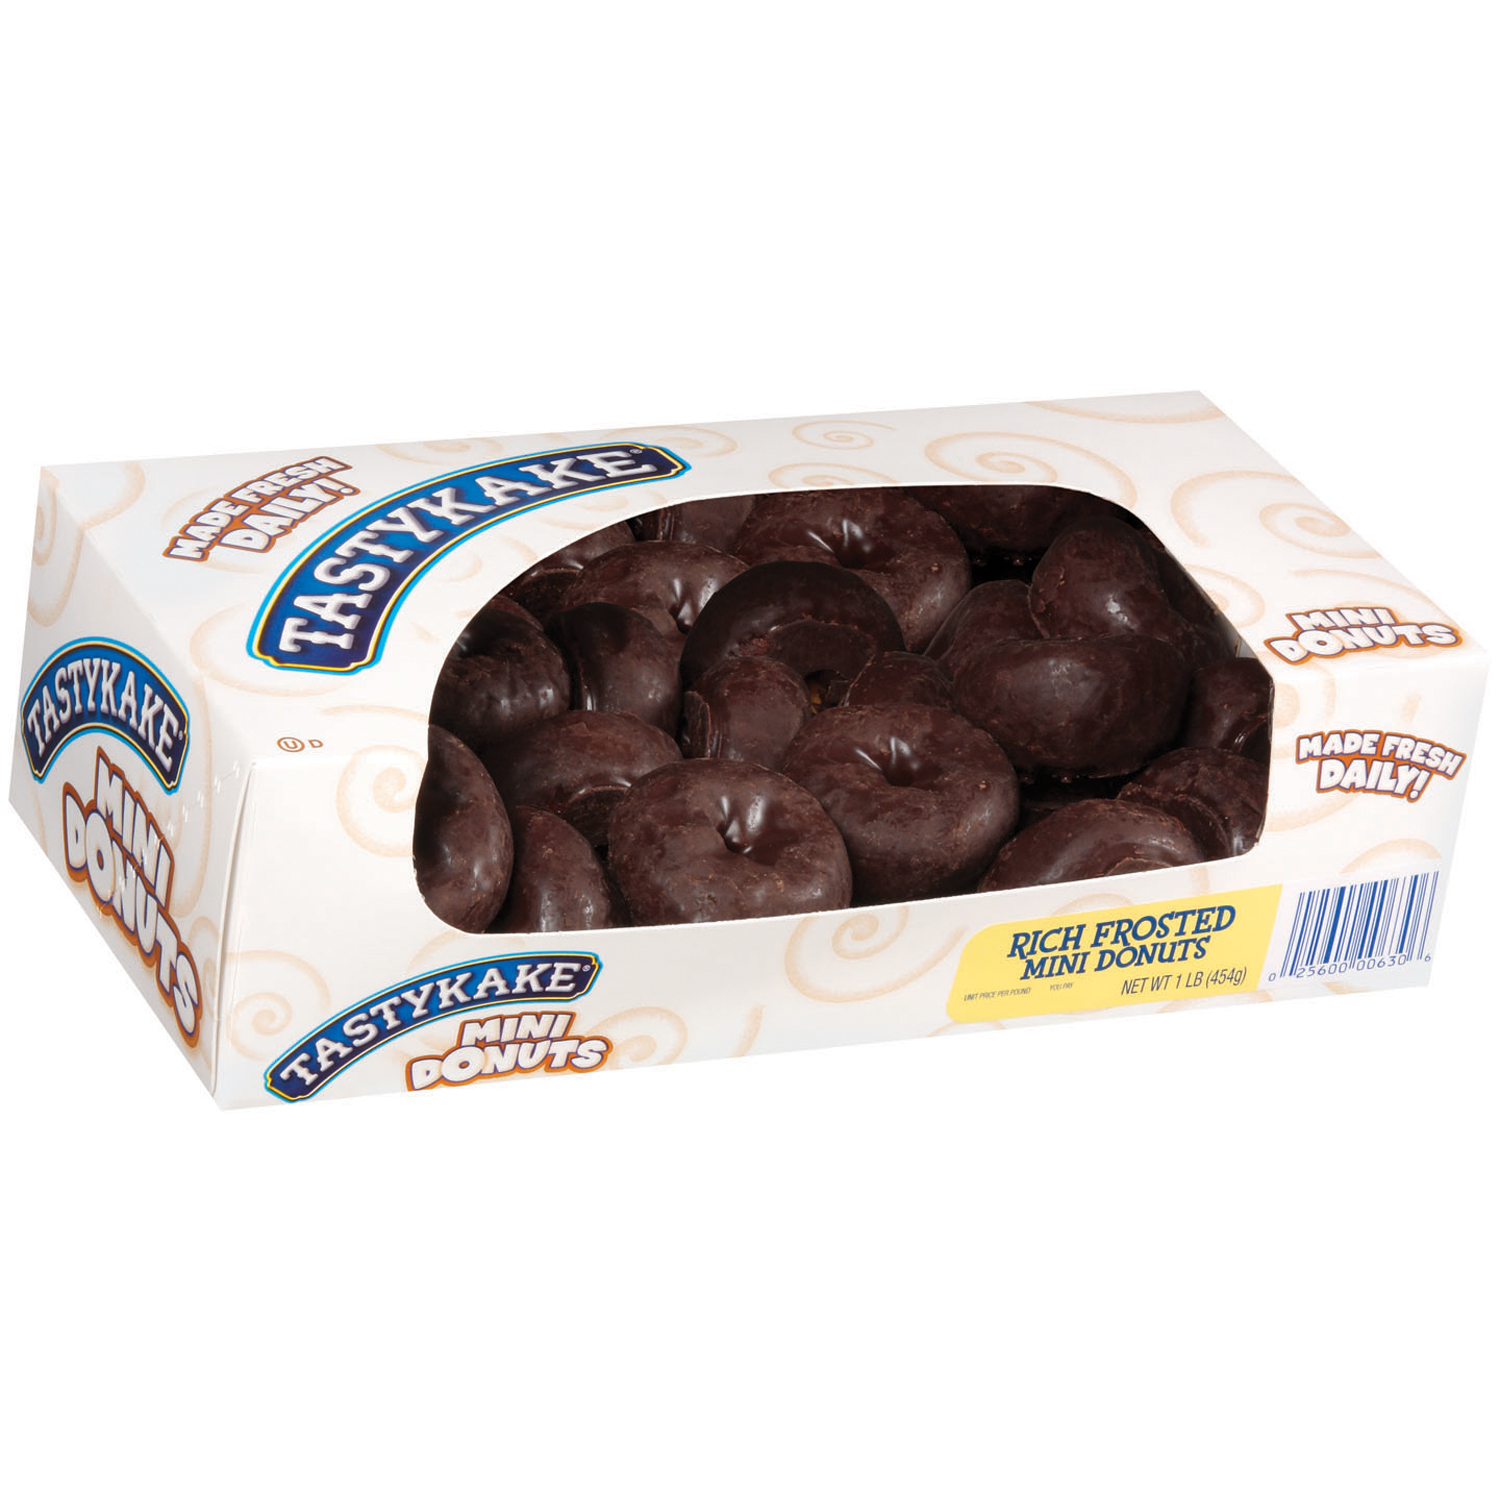 Tastykake Rich Frosted Chocolate Mini Donuts 1 Lb Box